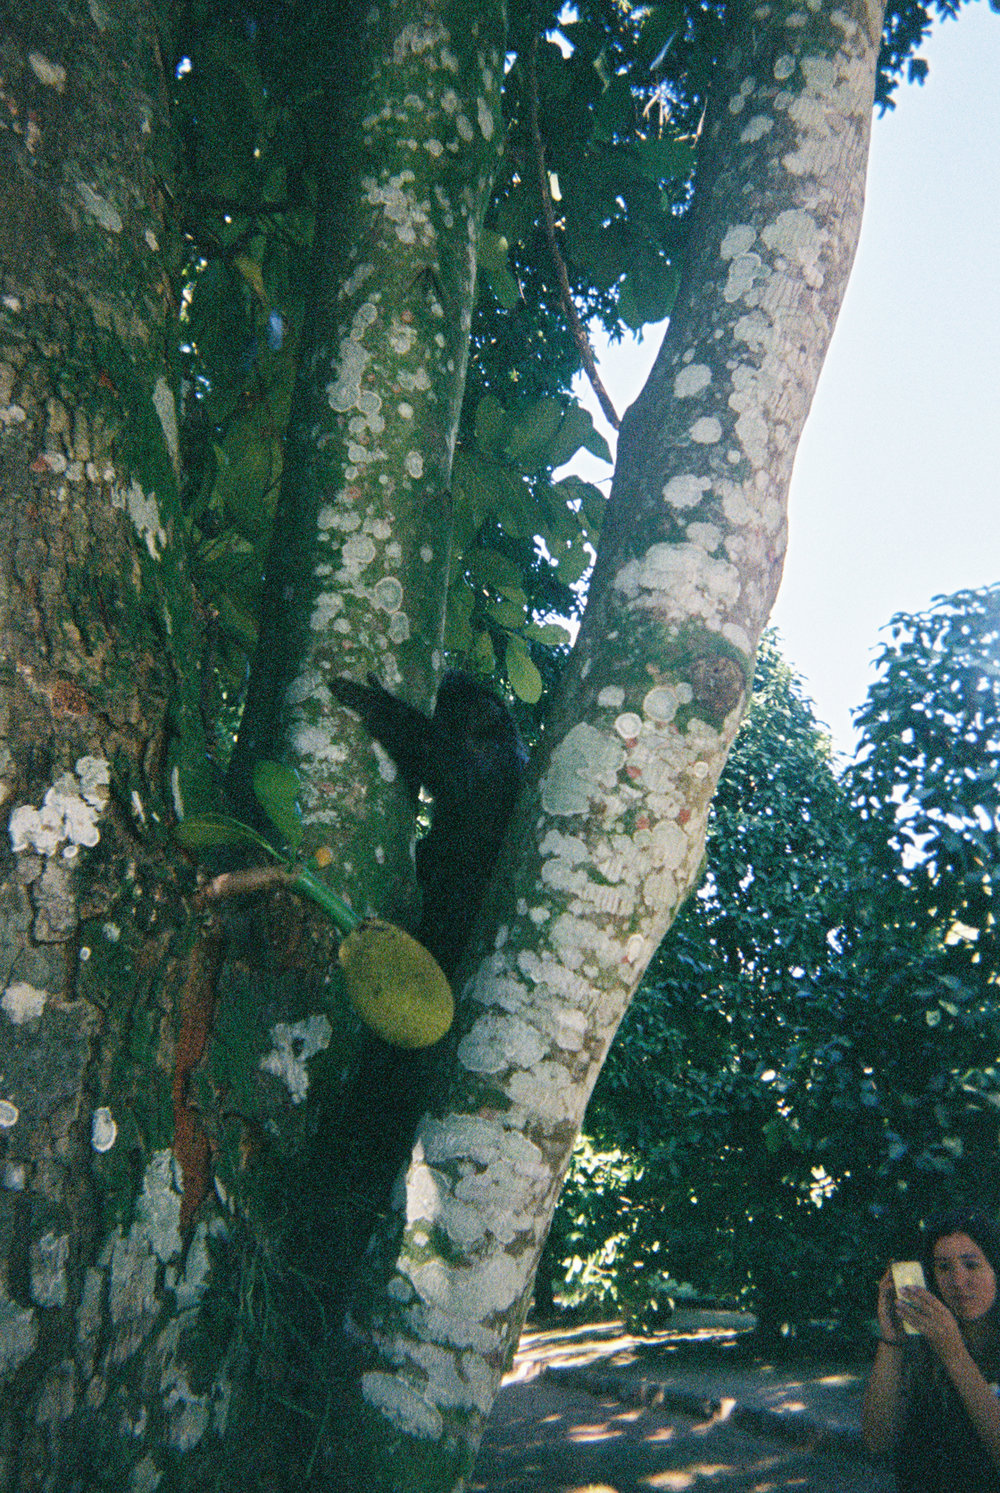 Jackfruit tree visitor